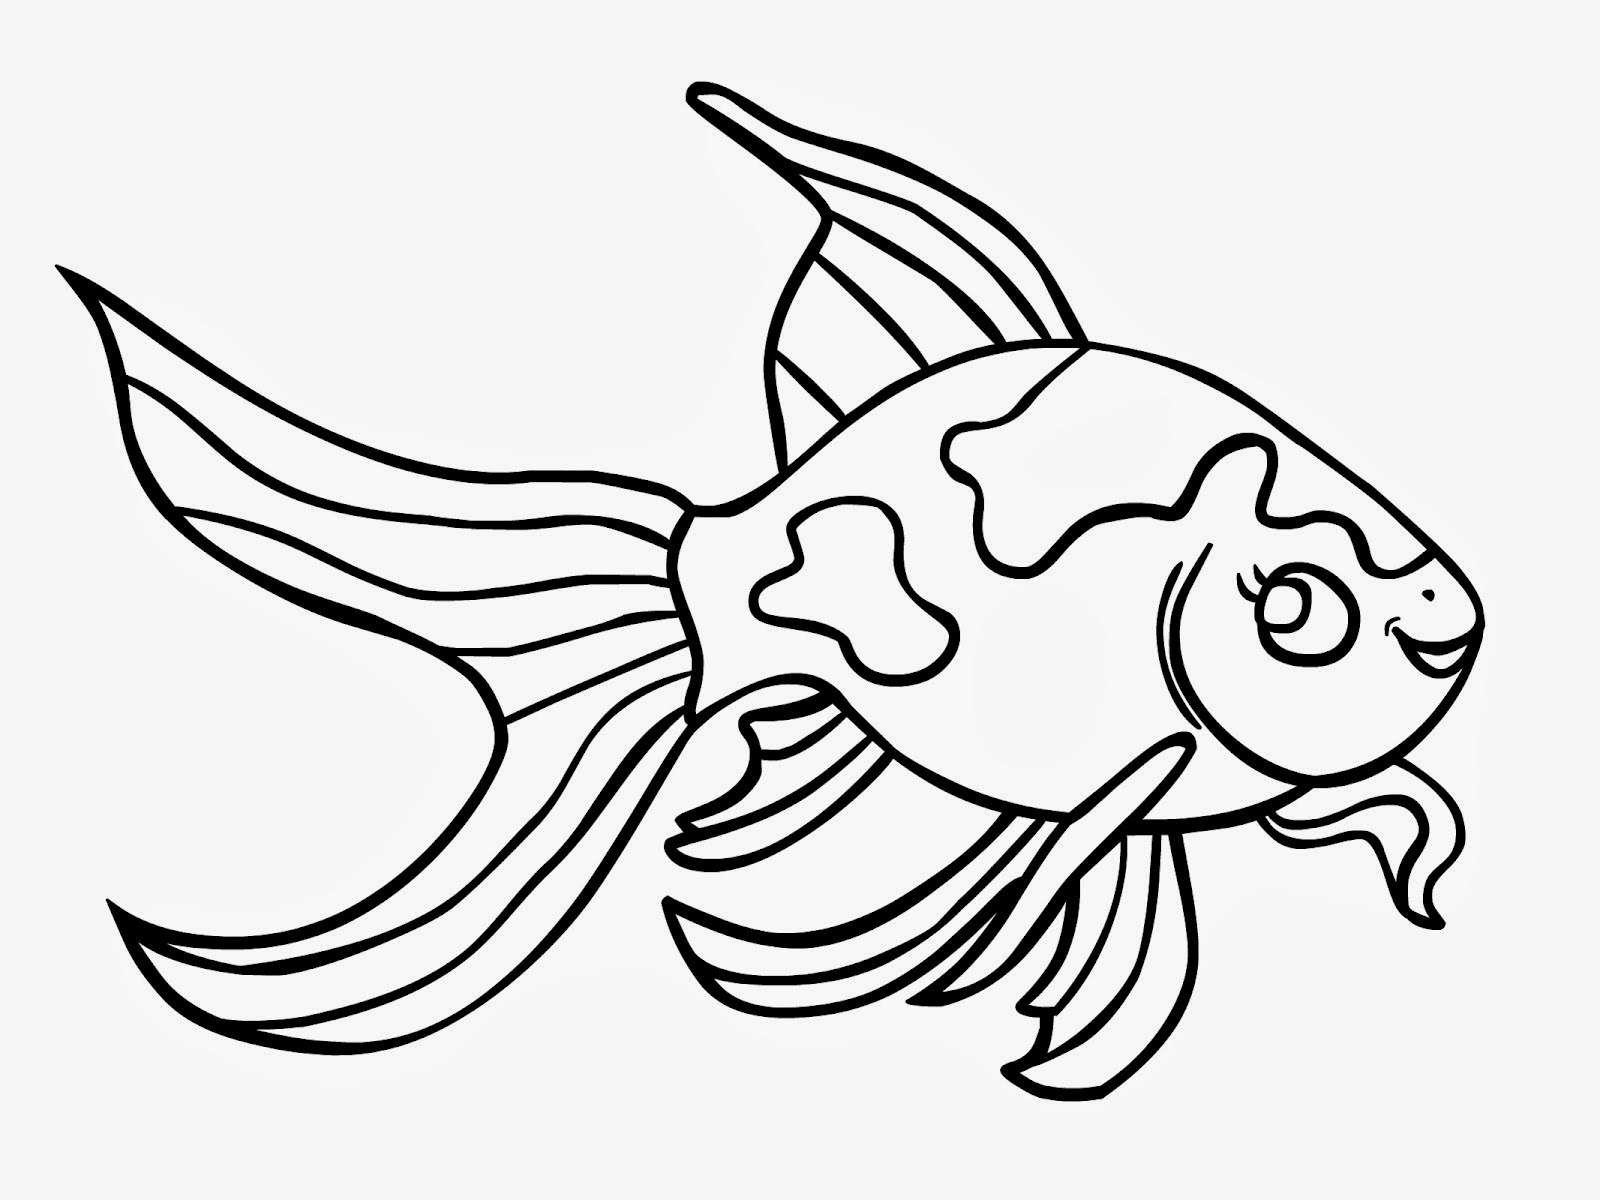 1600x1200 Outline Drawings Of Fish Group